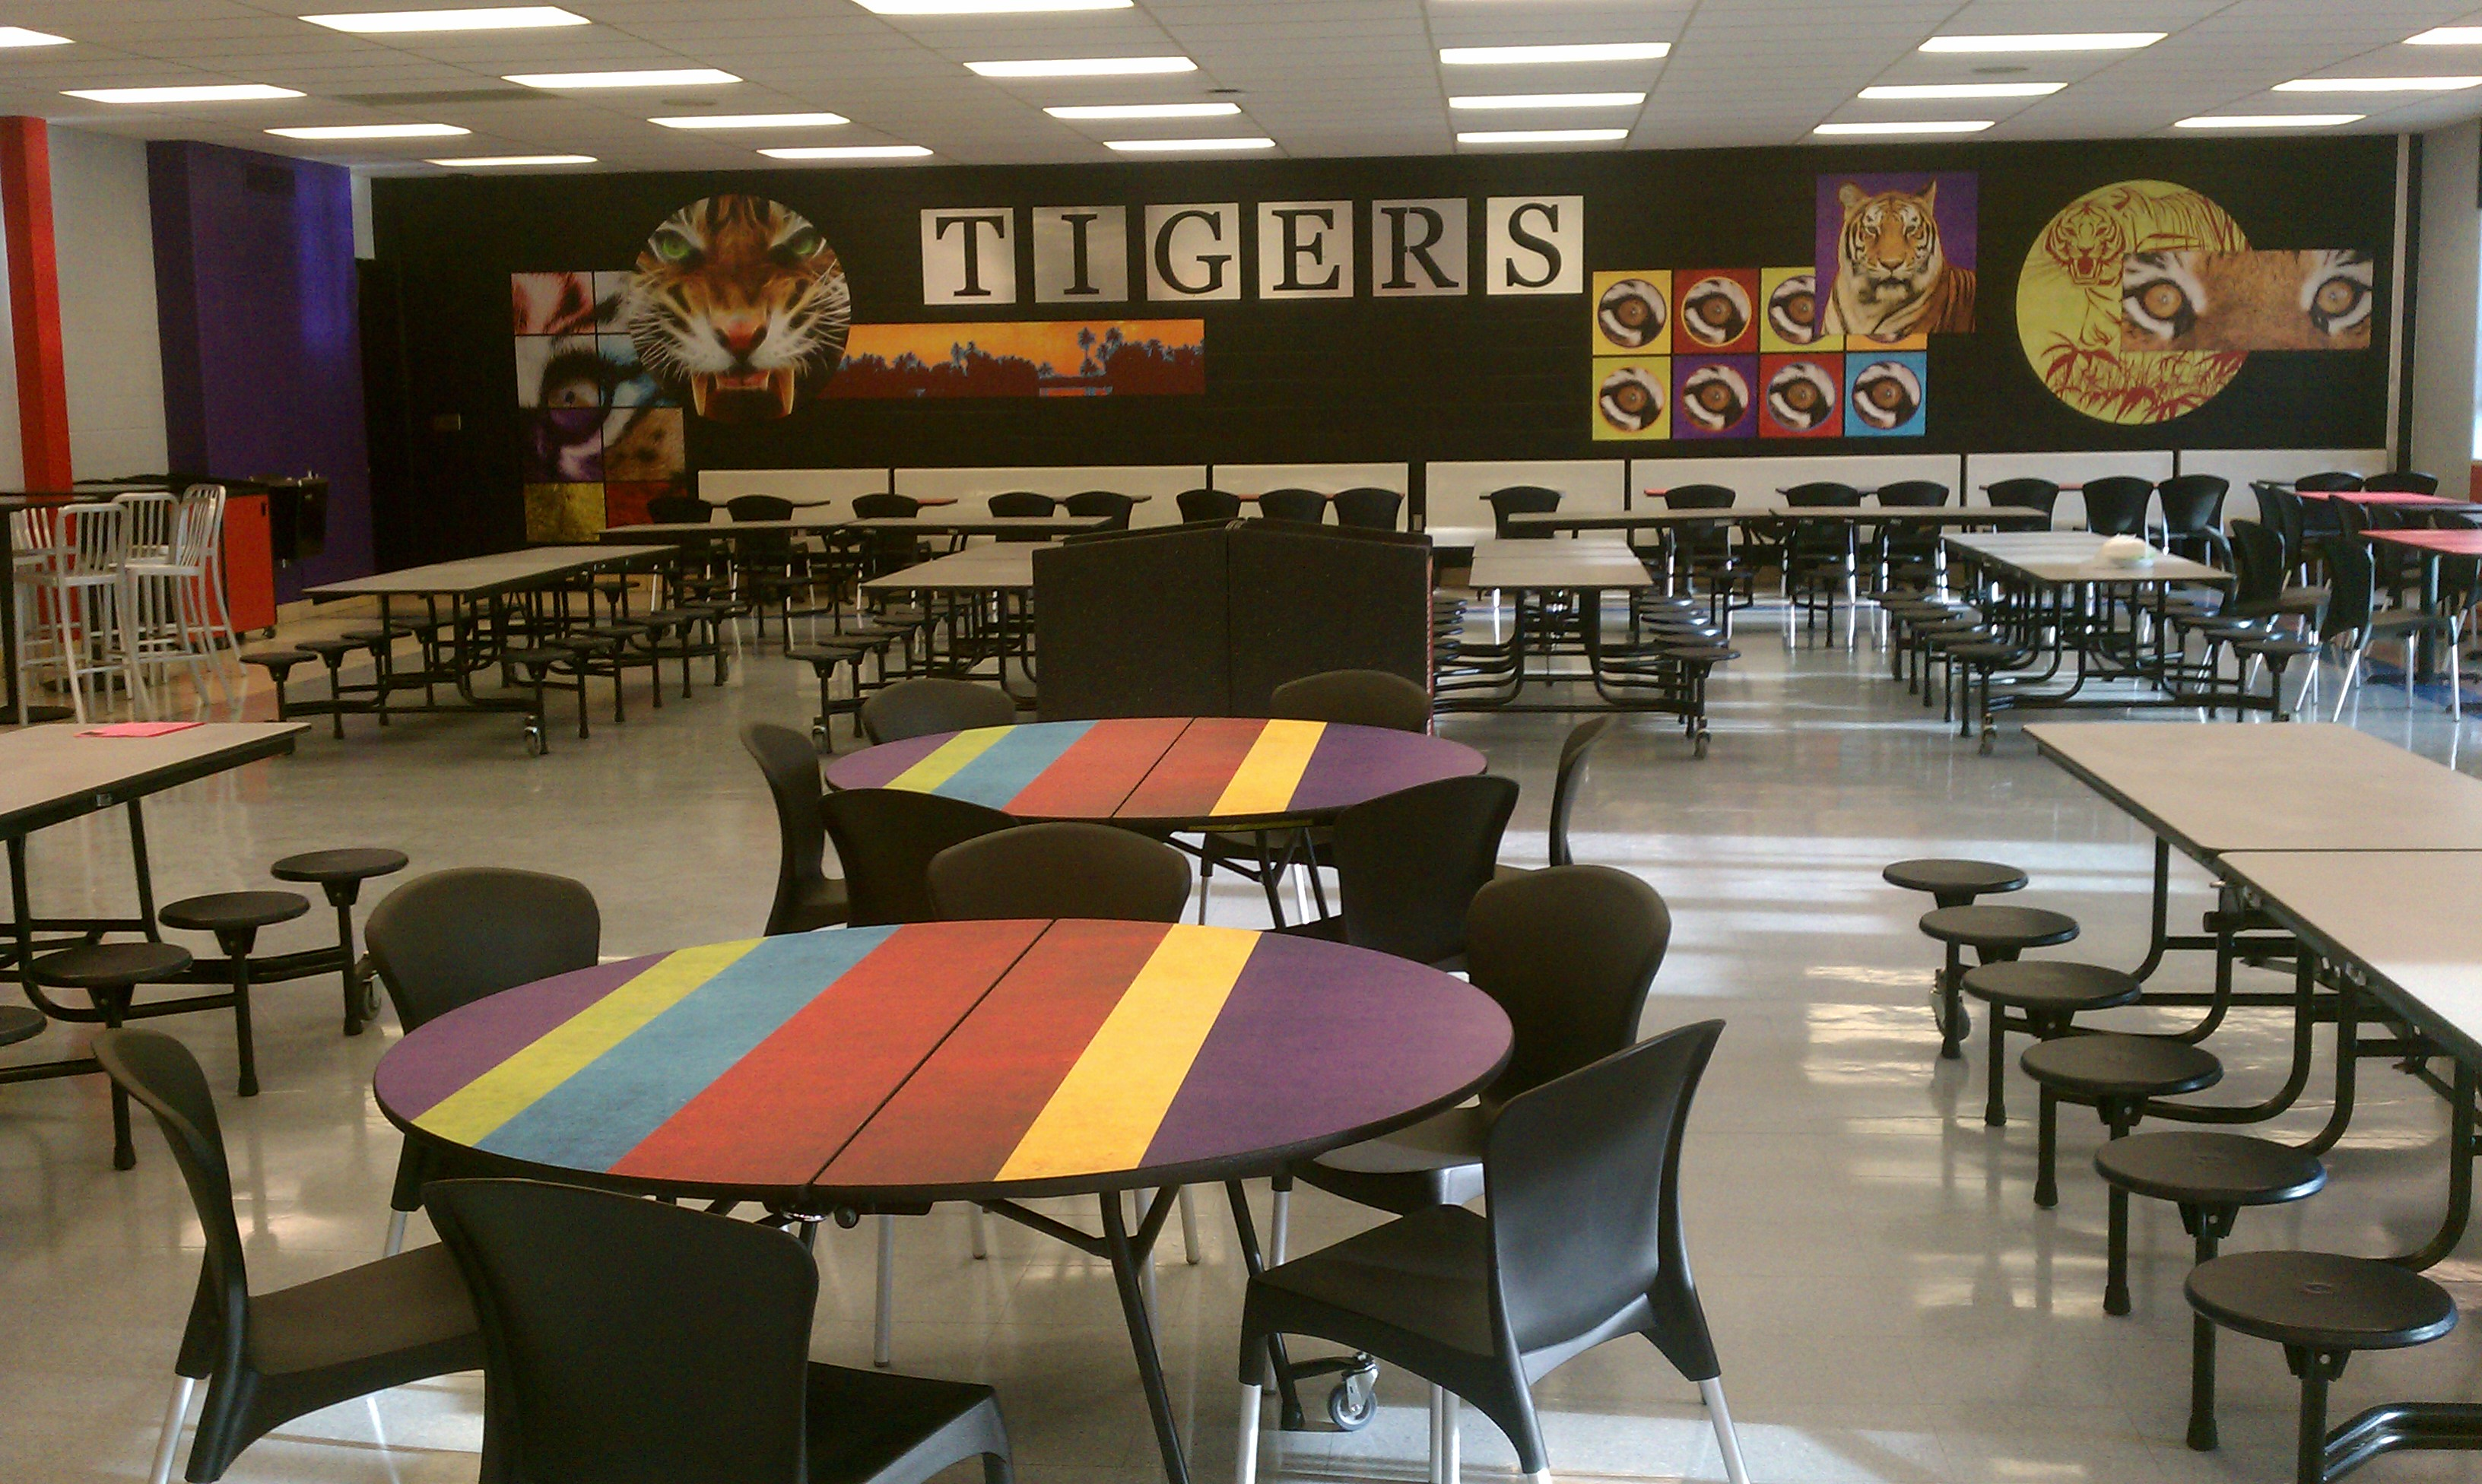 Cafeteria Seating | Cafeteria Furniture from Carroll Seating